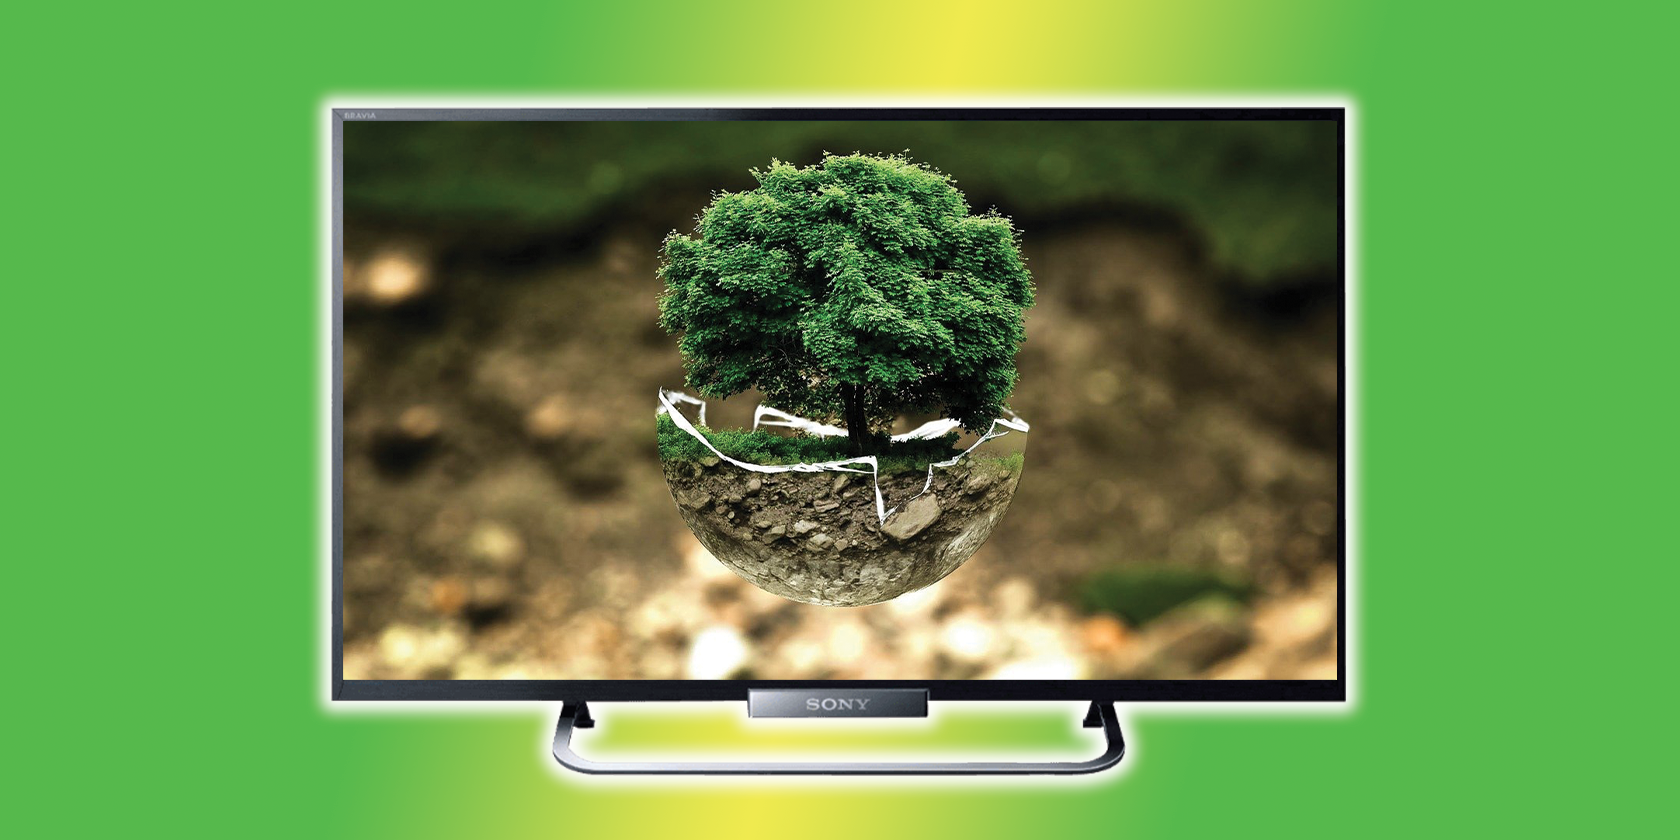 4 Ways to Make Your Entertainment More Eco Friendly